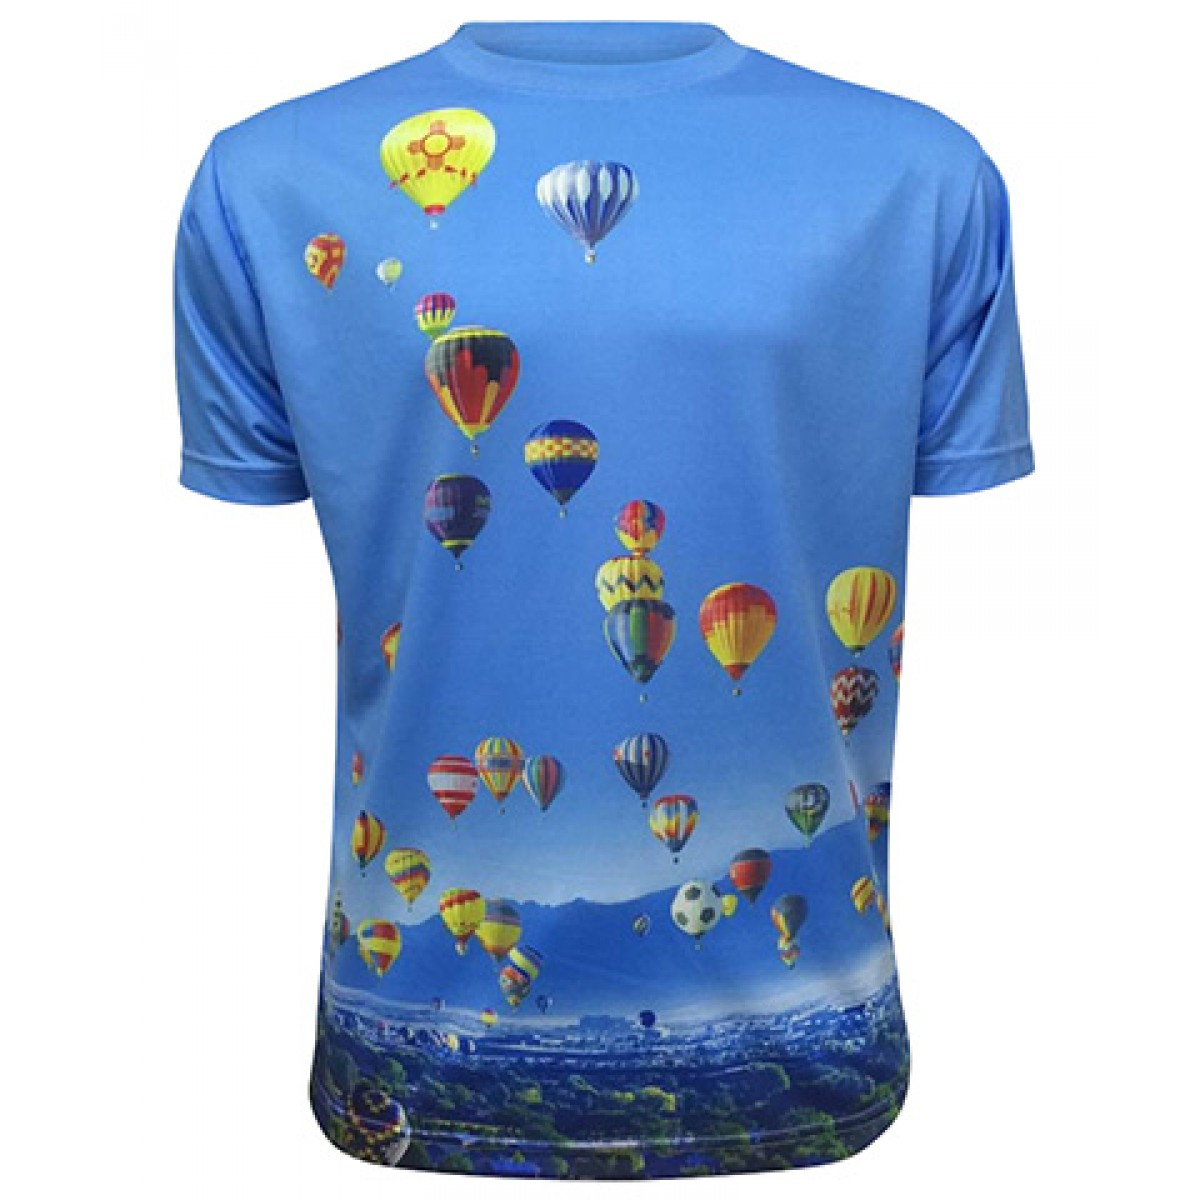 AIBF Sublimated Short Sleeve